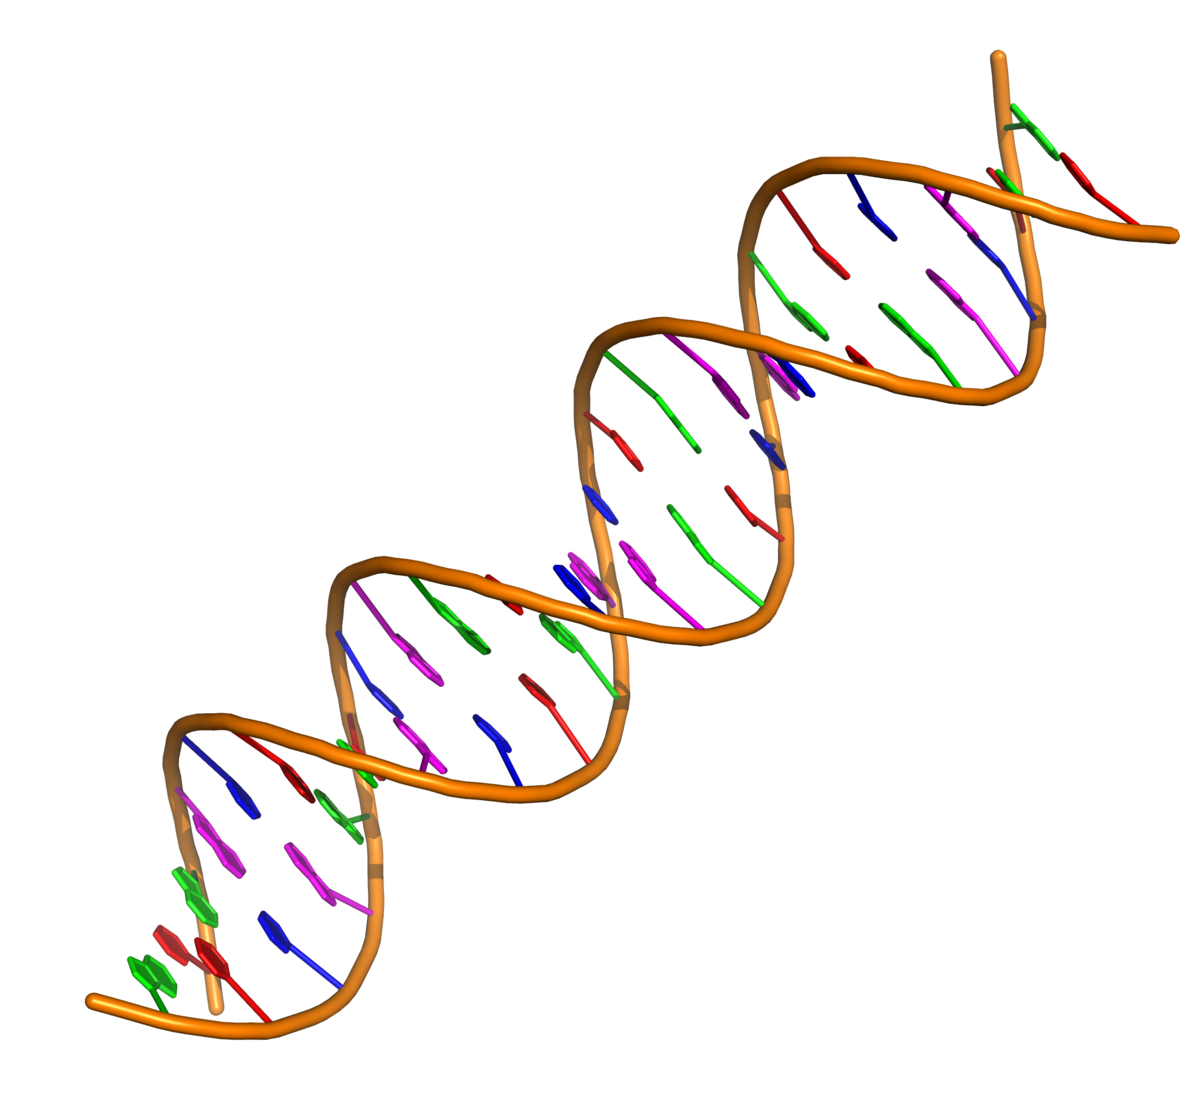 Nucleic Acid Double Helix